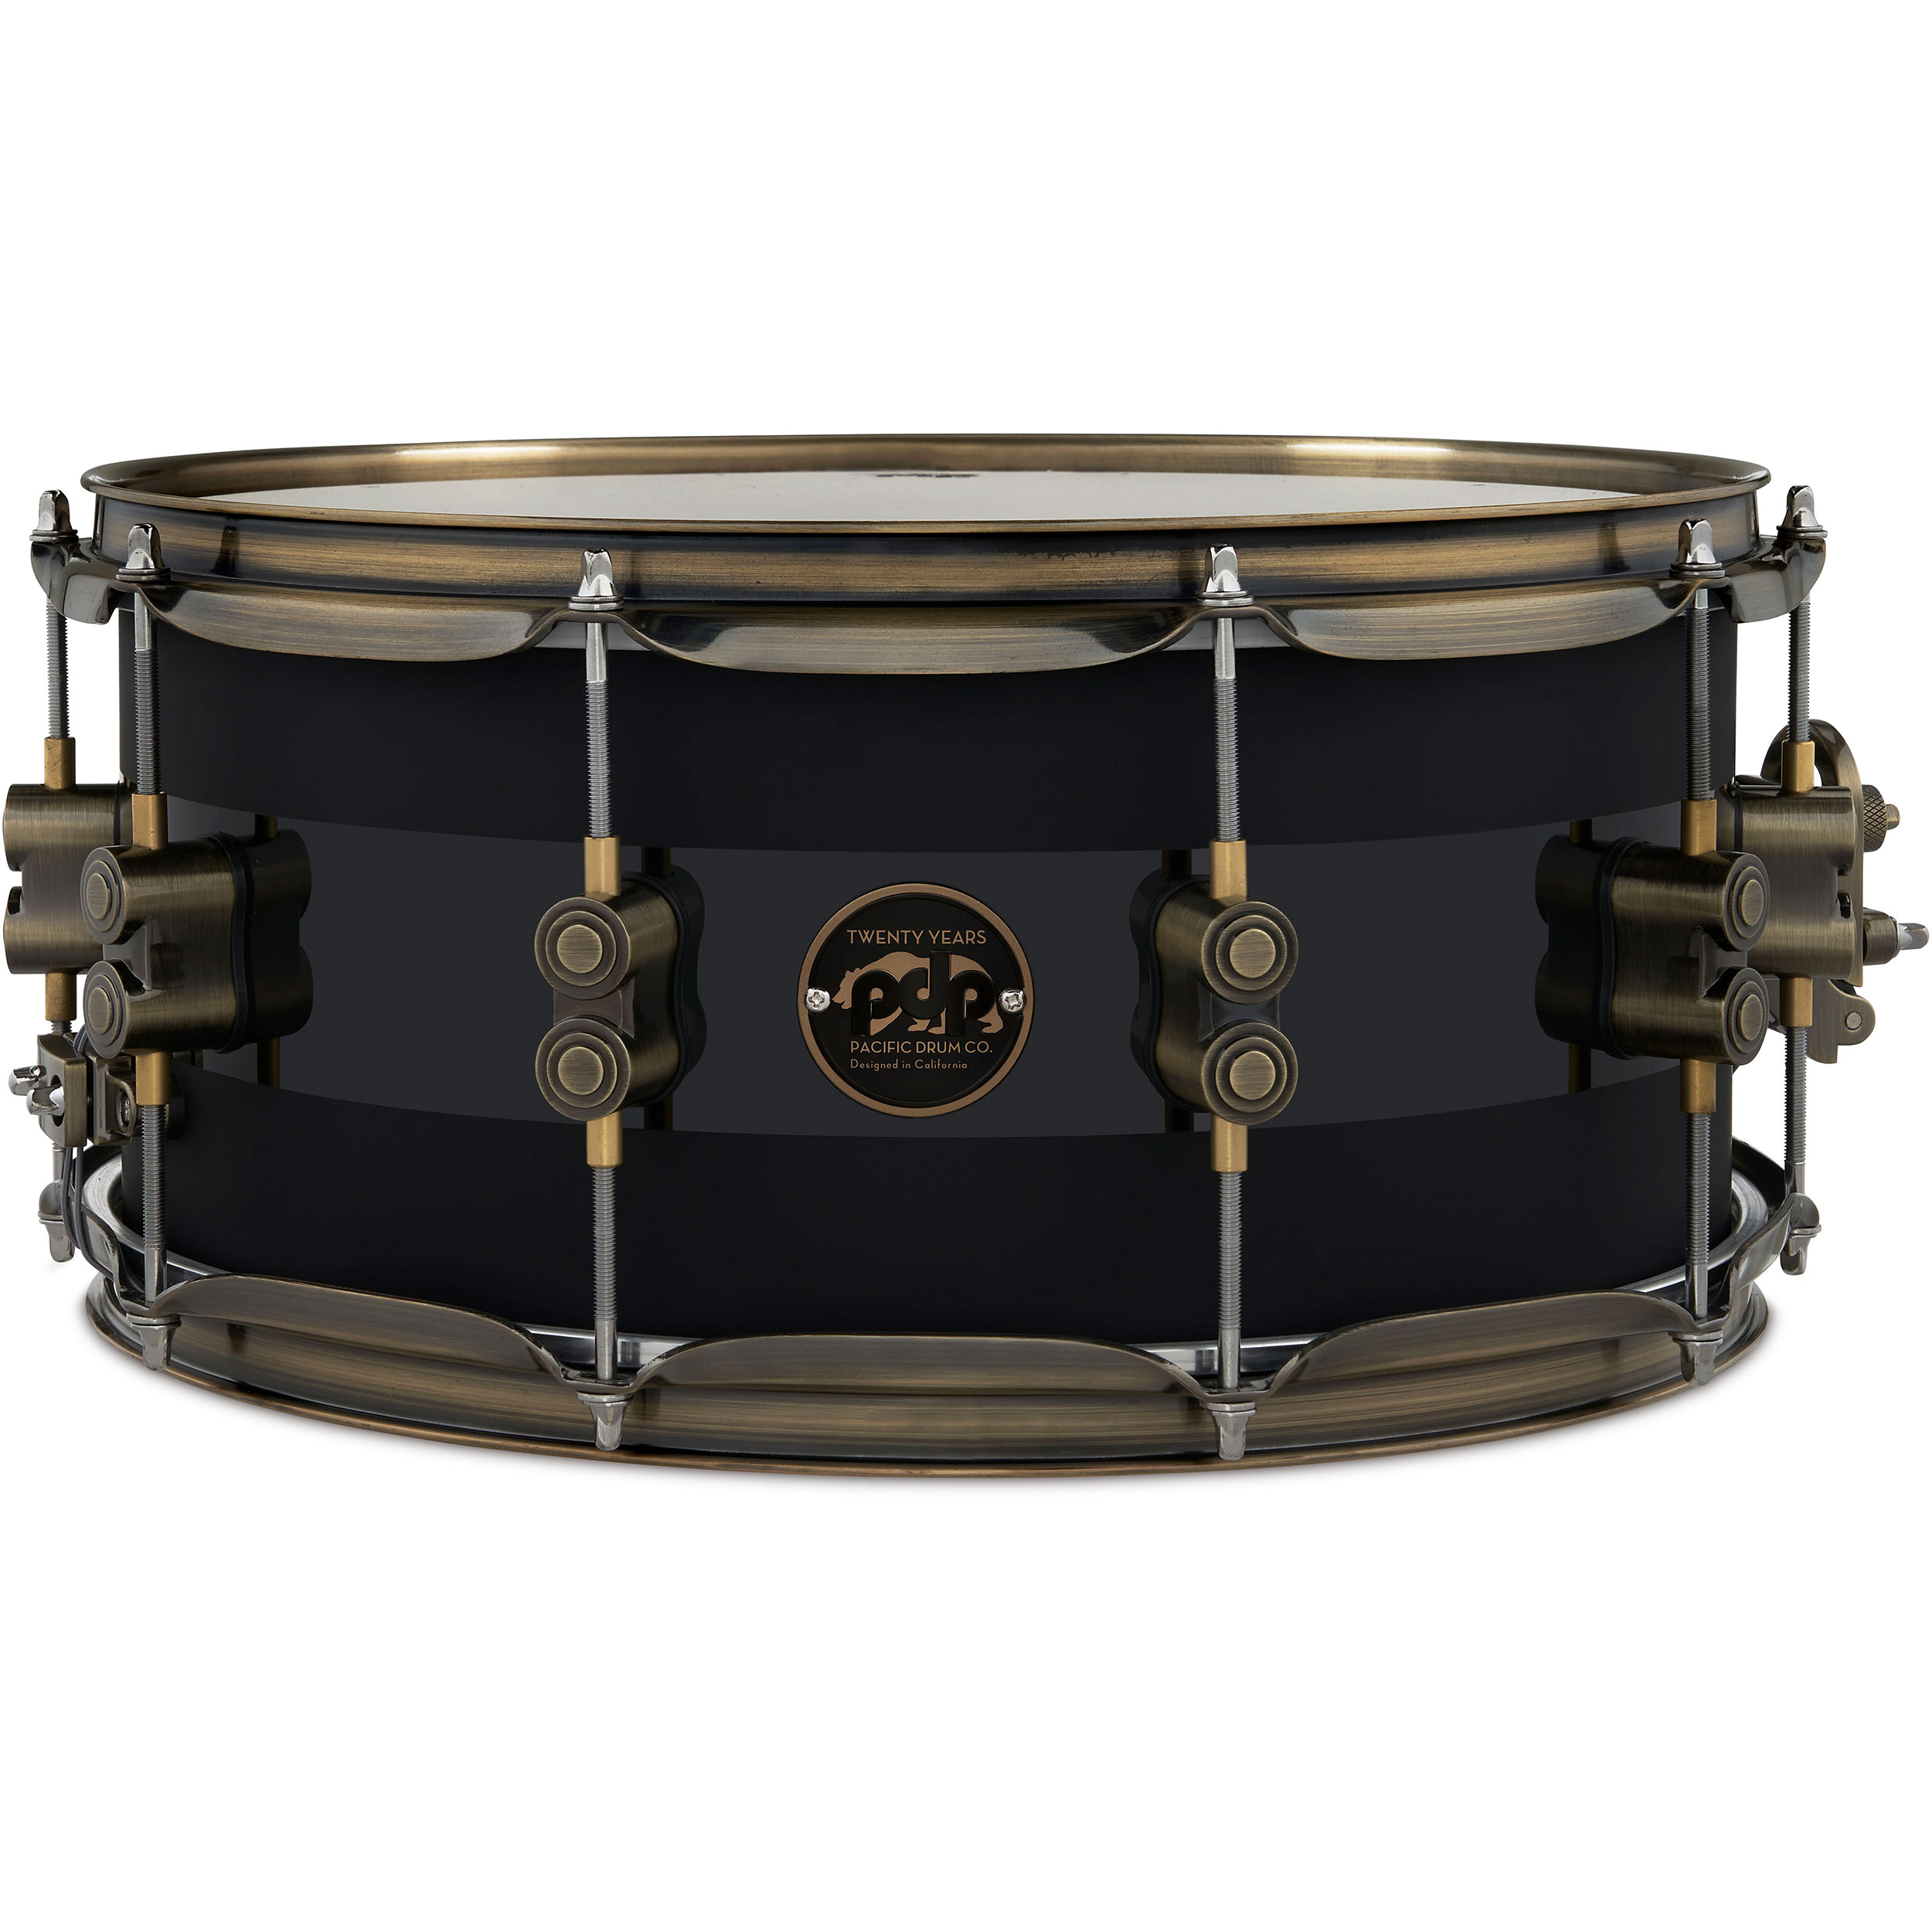 "PDP 6.5"" x 14"" Limited Edition 20th Anniversary Snare Drum"